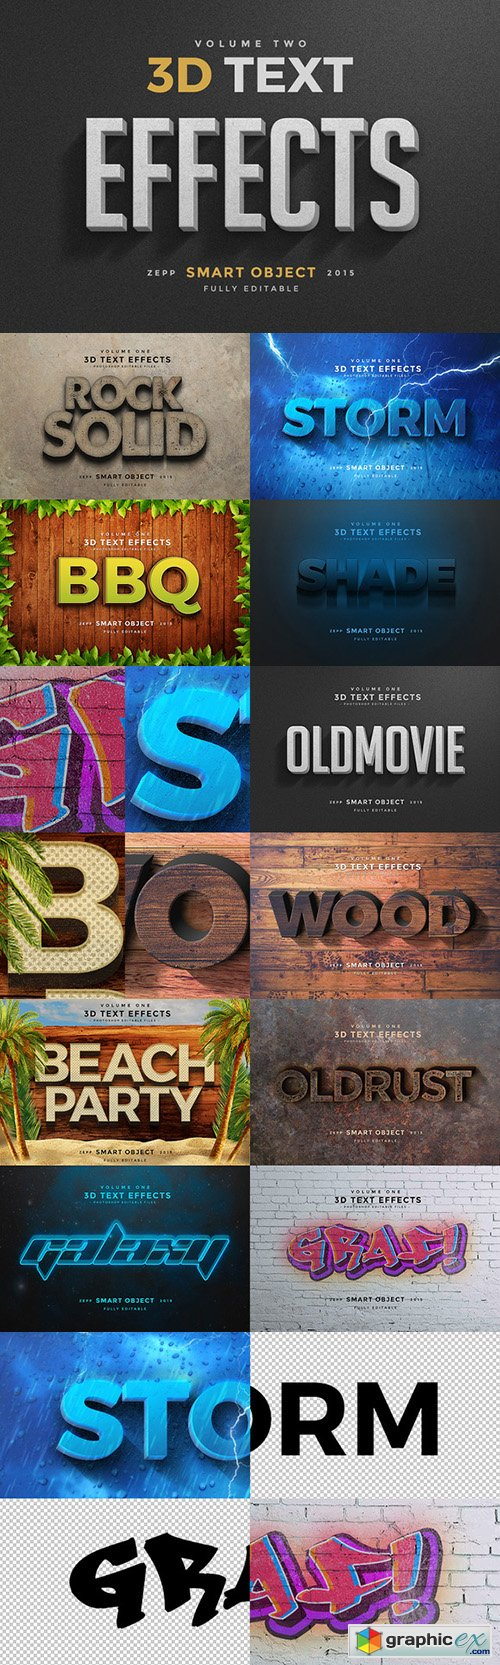 3D Text Effects Vol 2 » Free Download Vector Stock Image